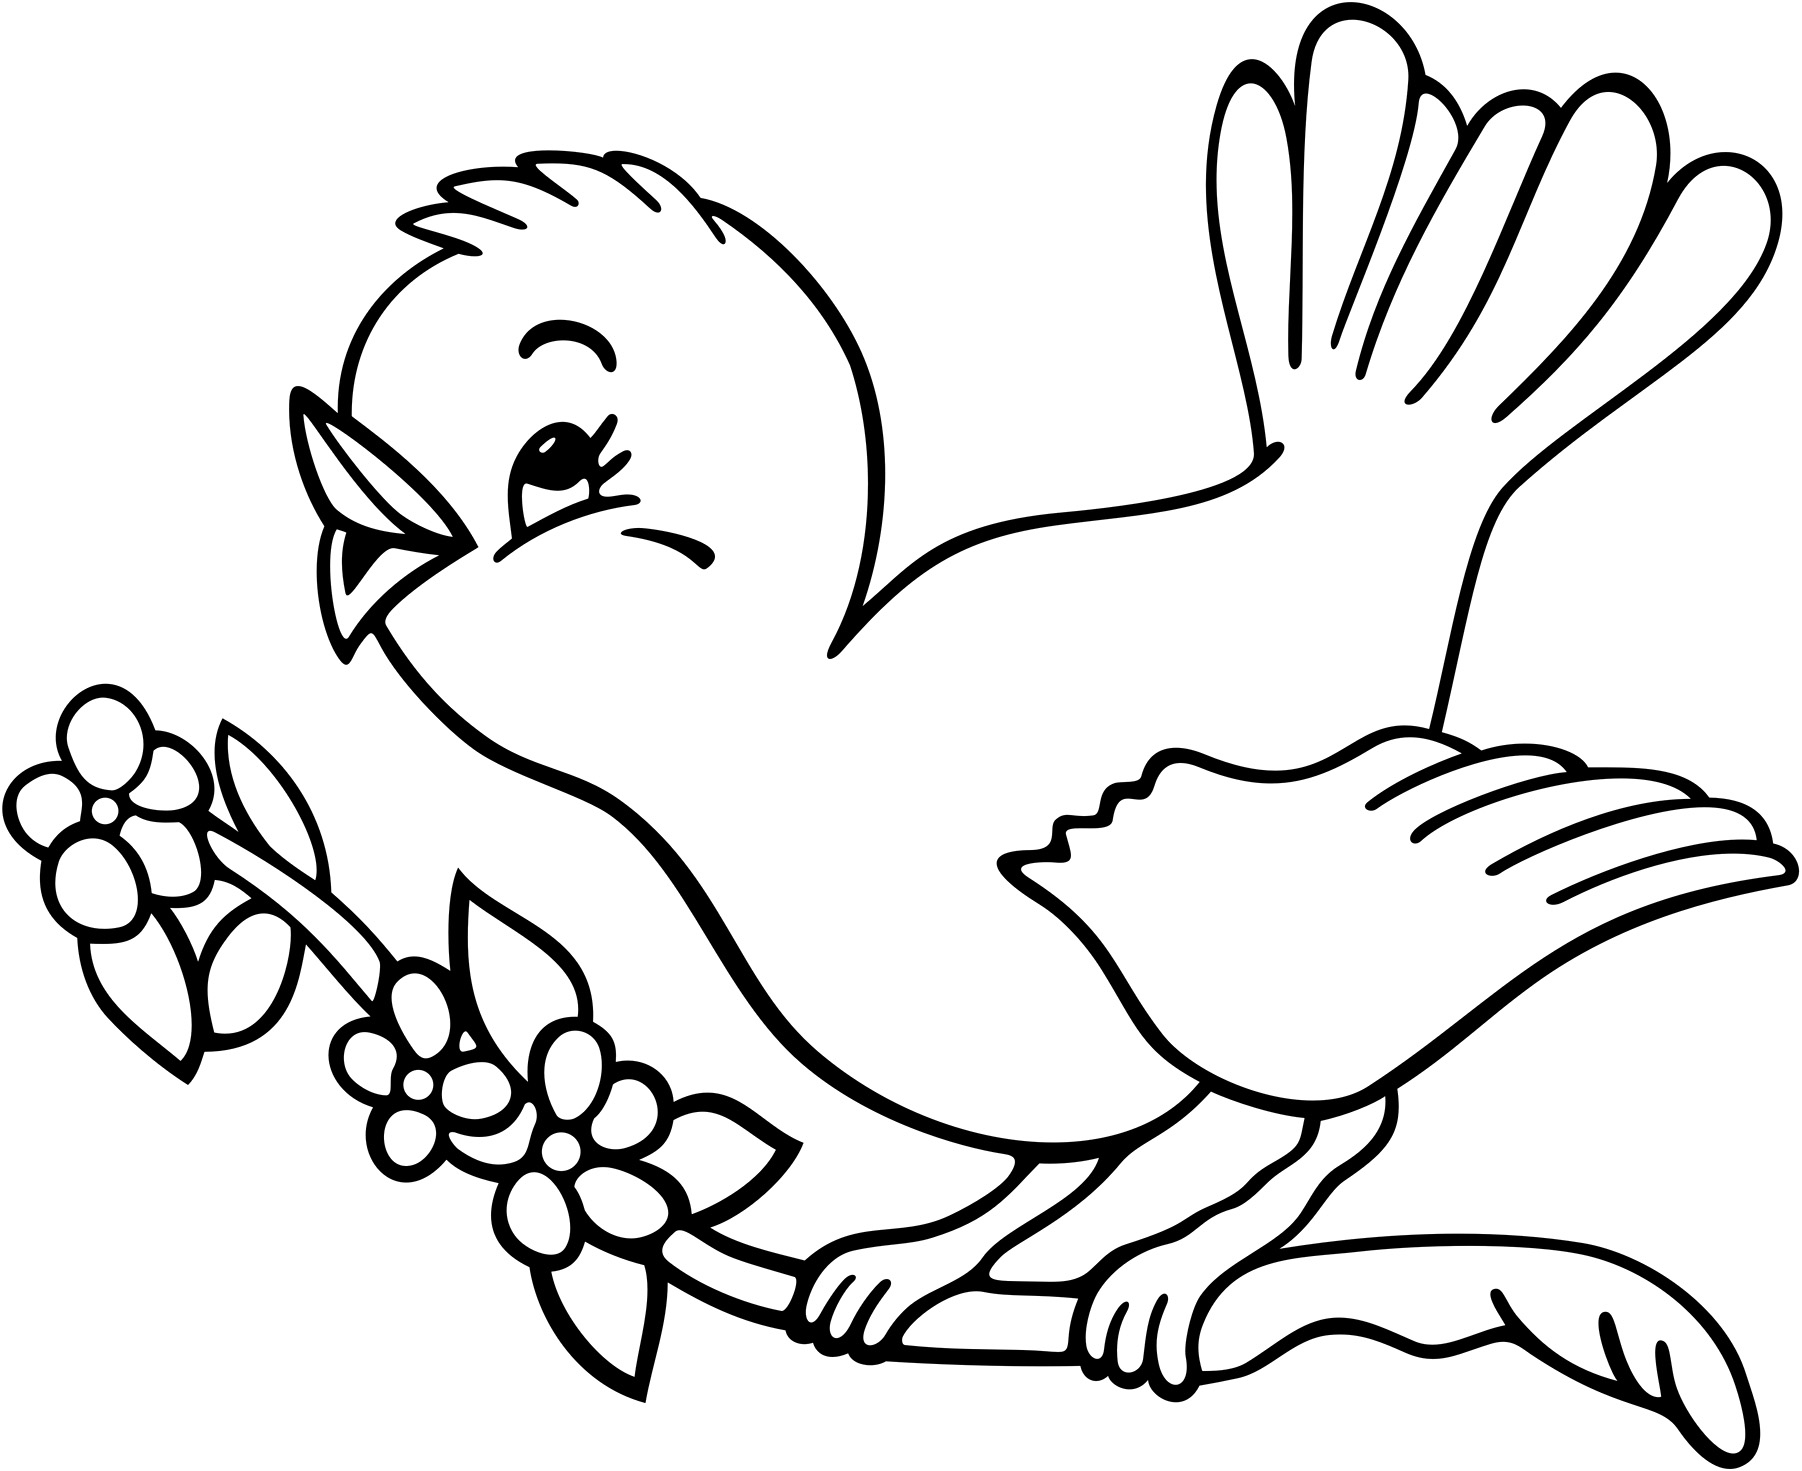 bird color pages bird10 coloring kids pages color bird